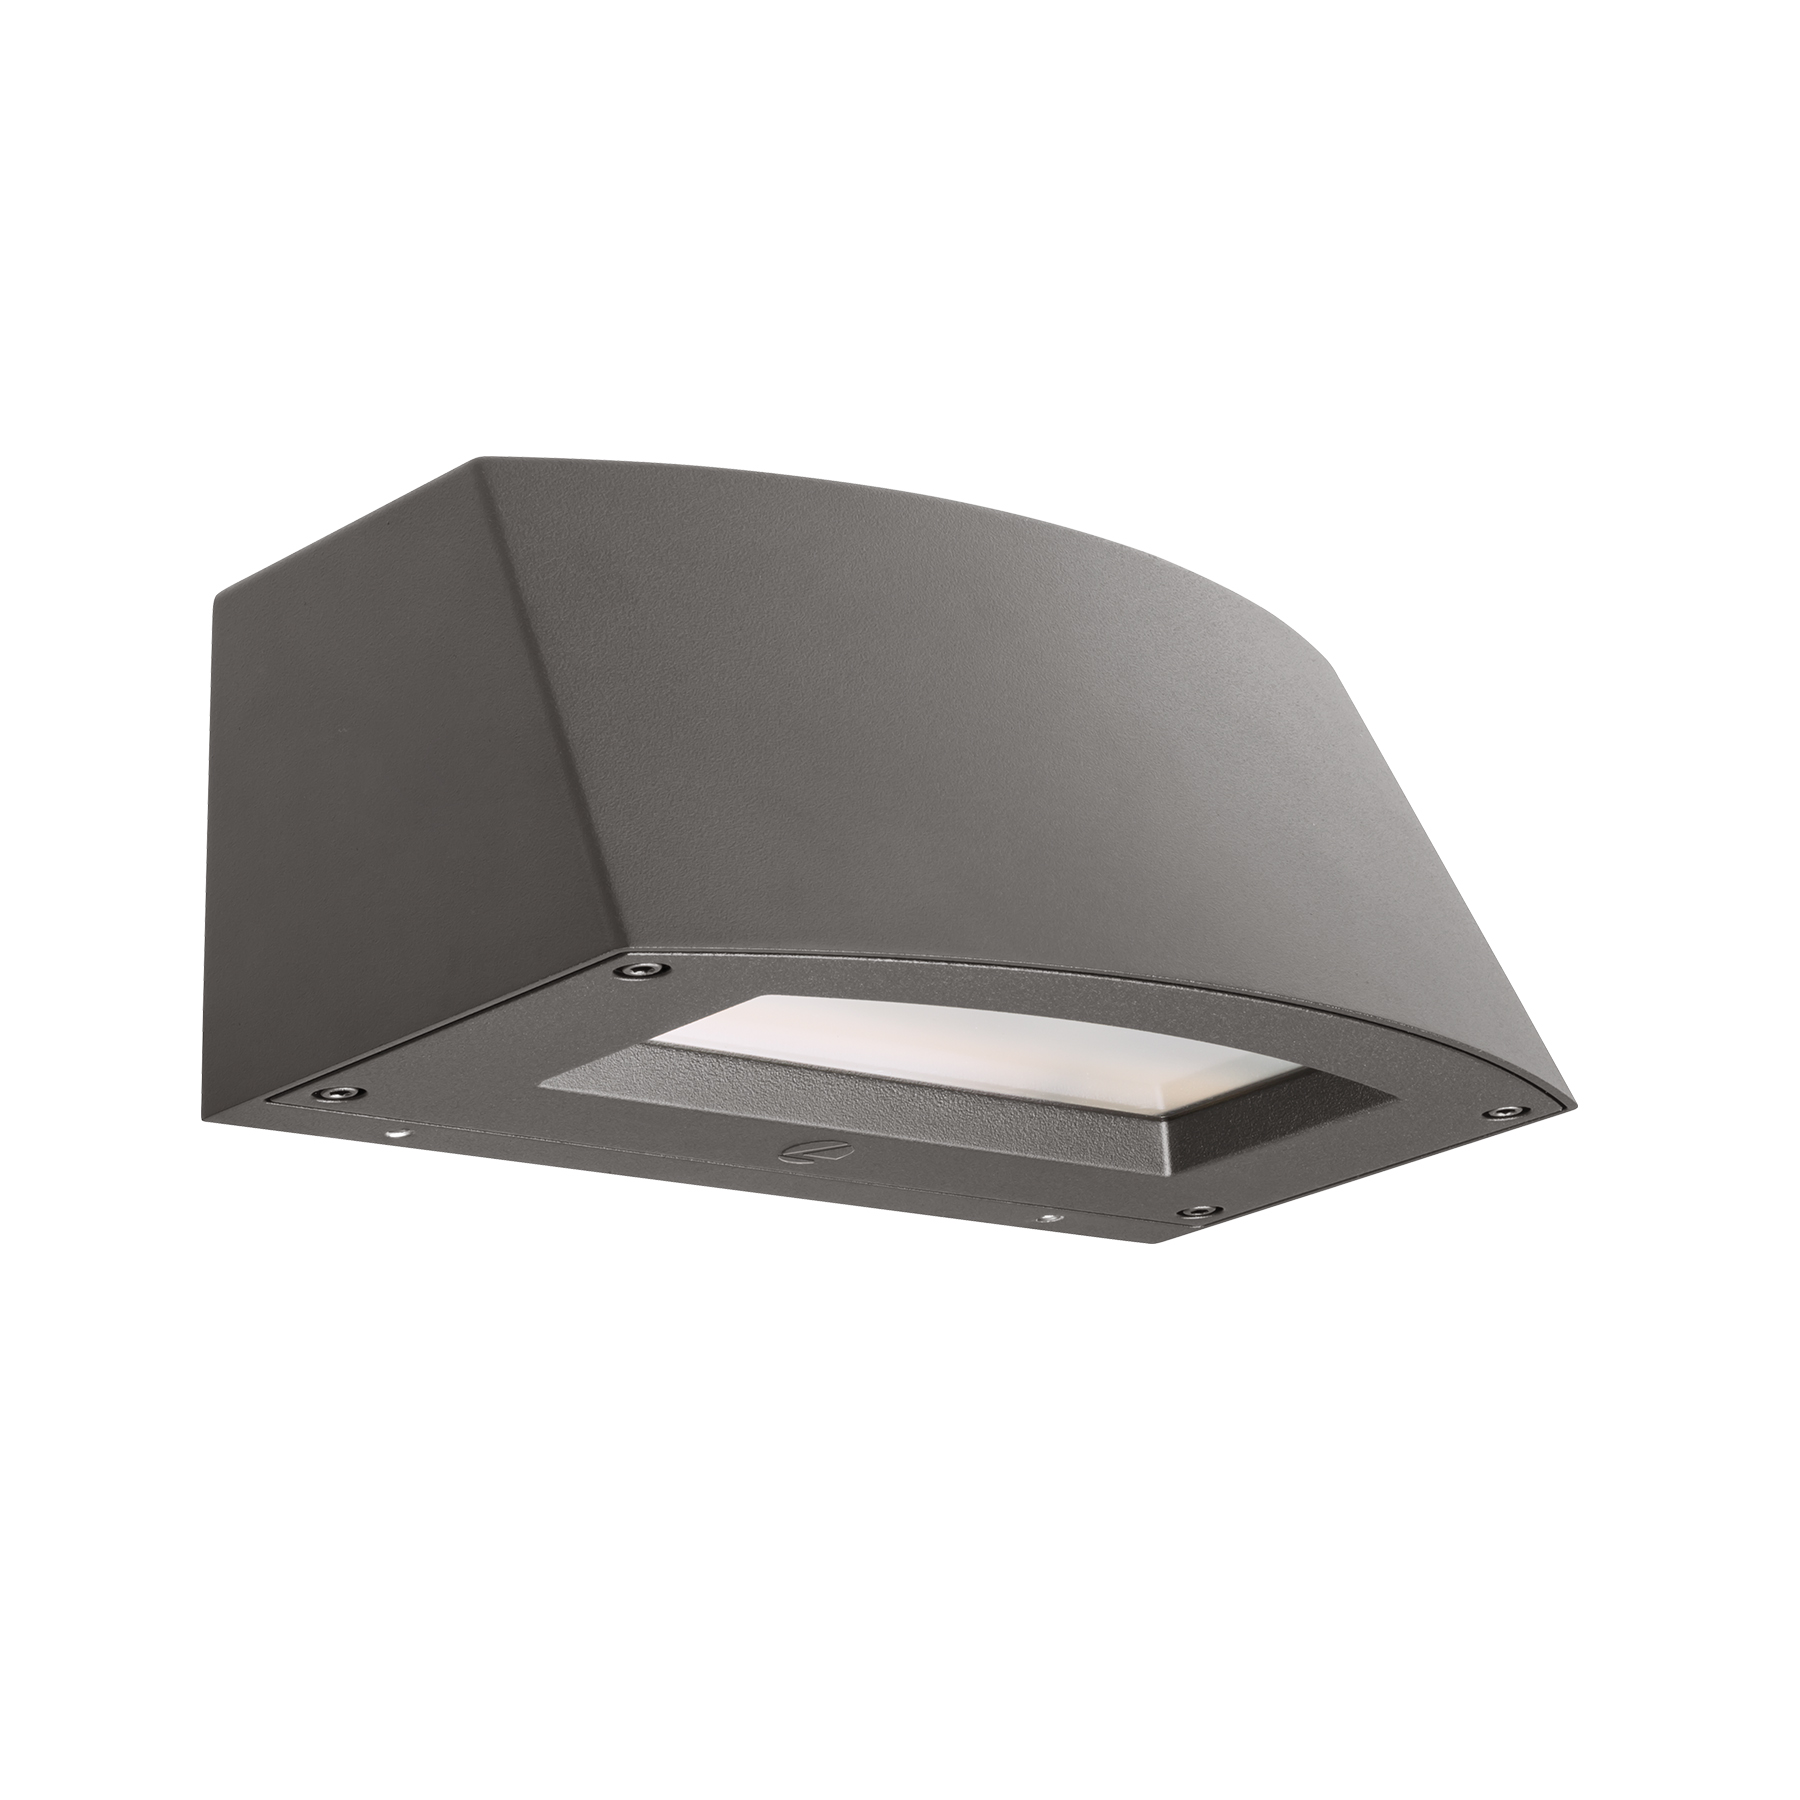 ARC1 LED Wall Mount